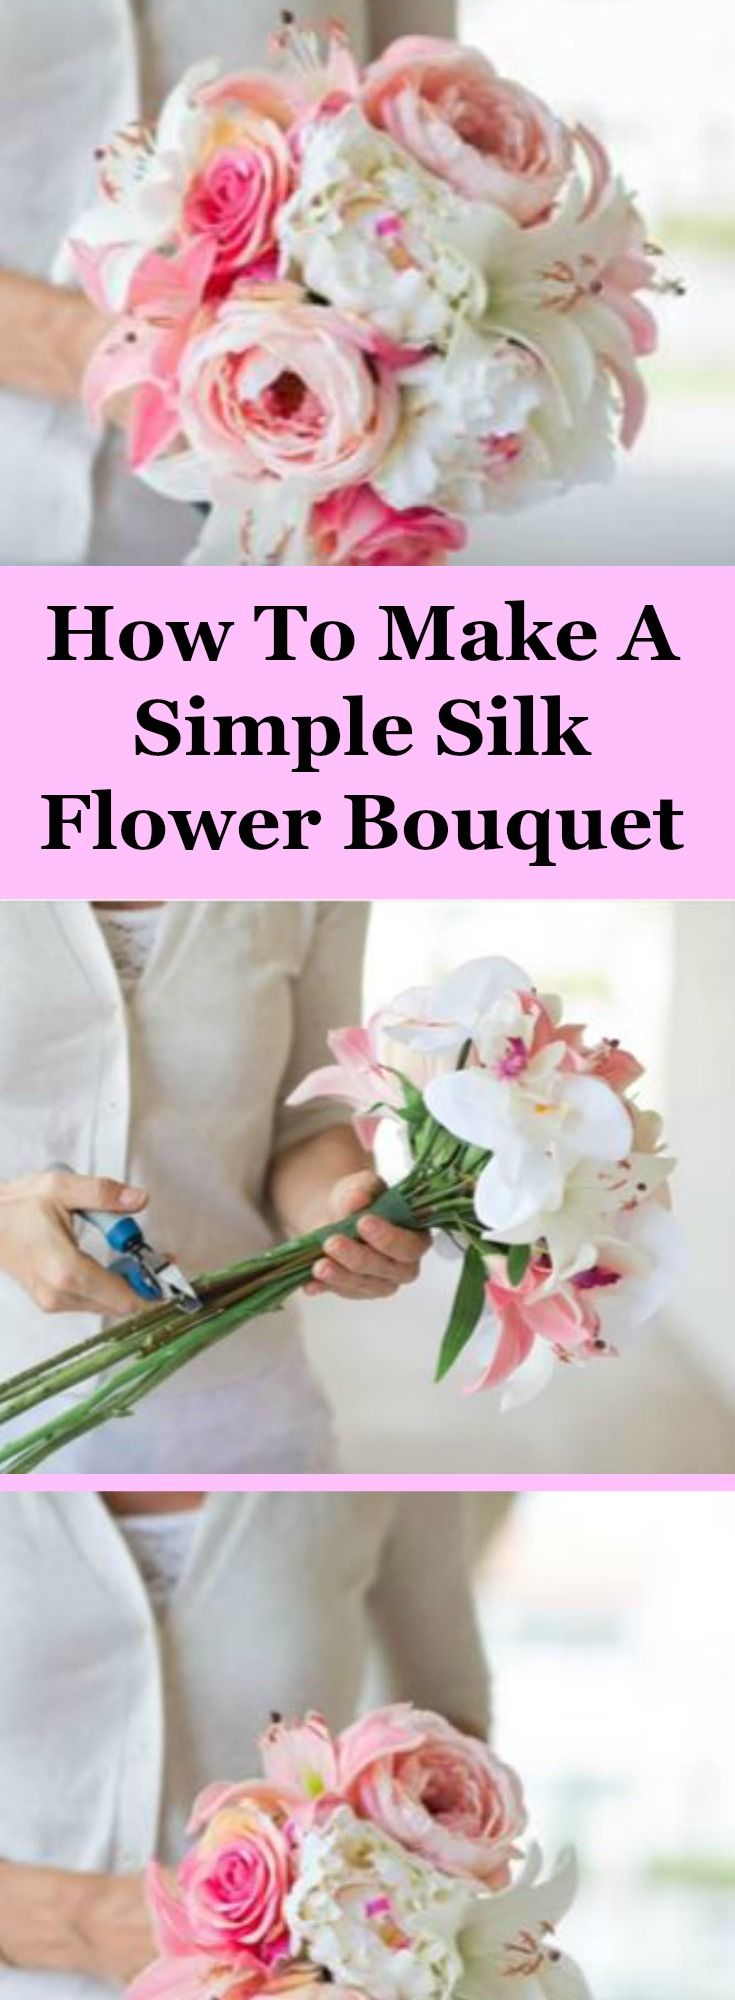 How to make a simple silk flower bouquet silk flower bouquets how to make a simple silk flower bouquet with this video izmirmasajfo